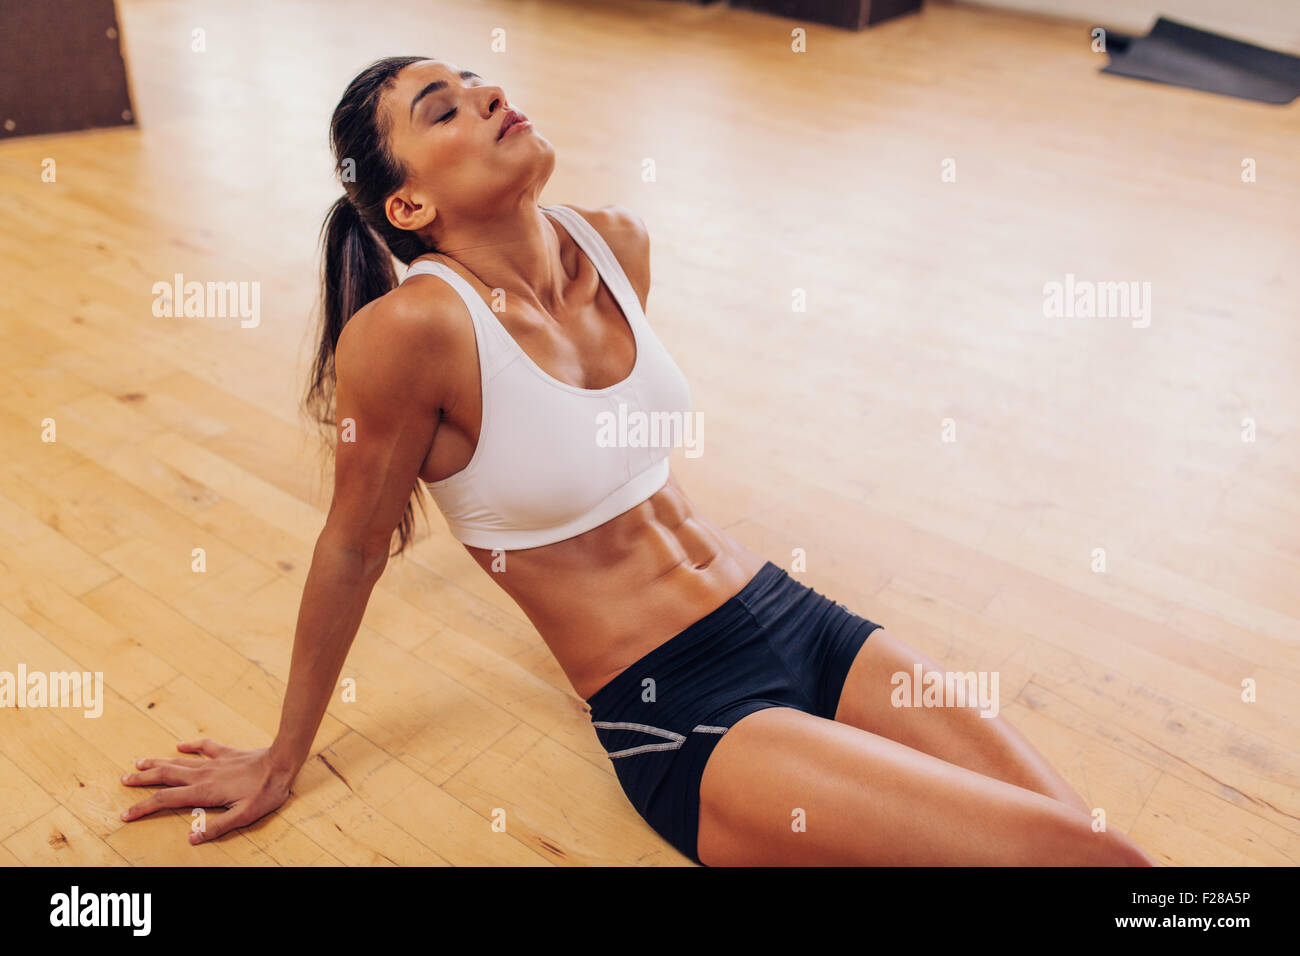 Portrait of tired woman having rest after workout. Tired and exhausted female athlete sitting on floor at gym. - Stock Image